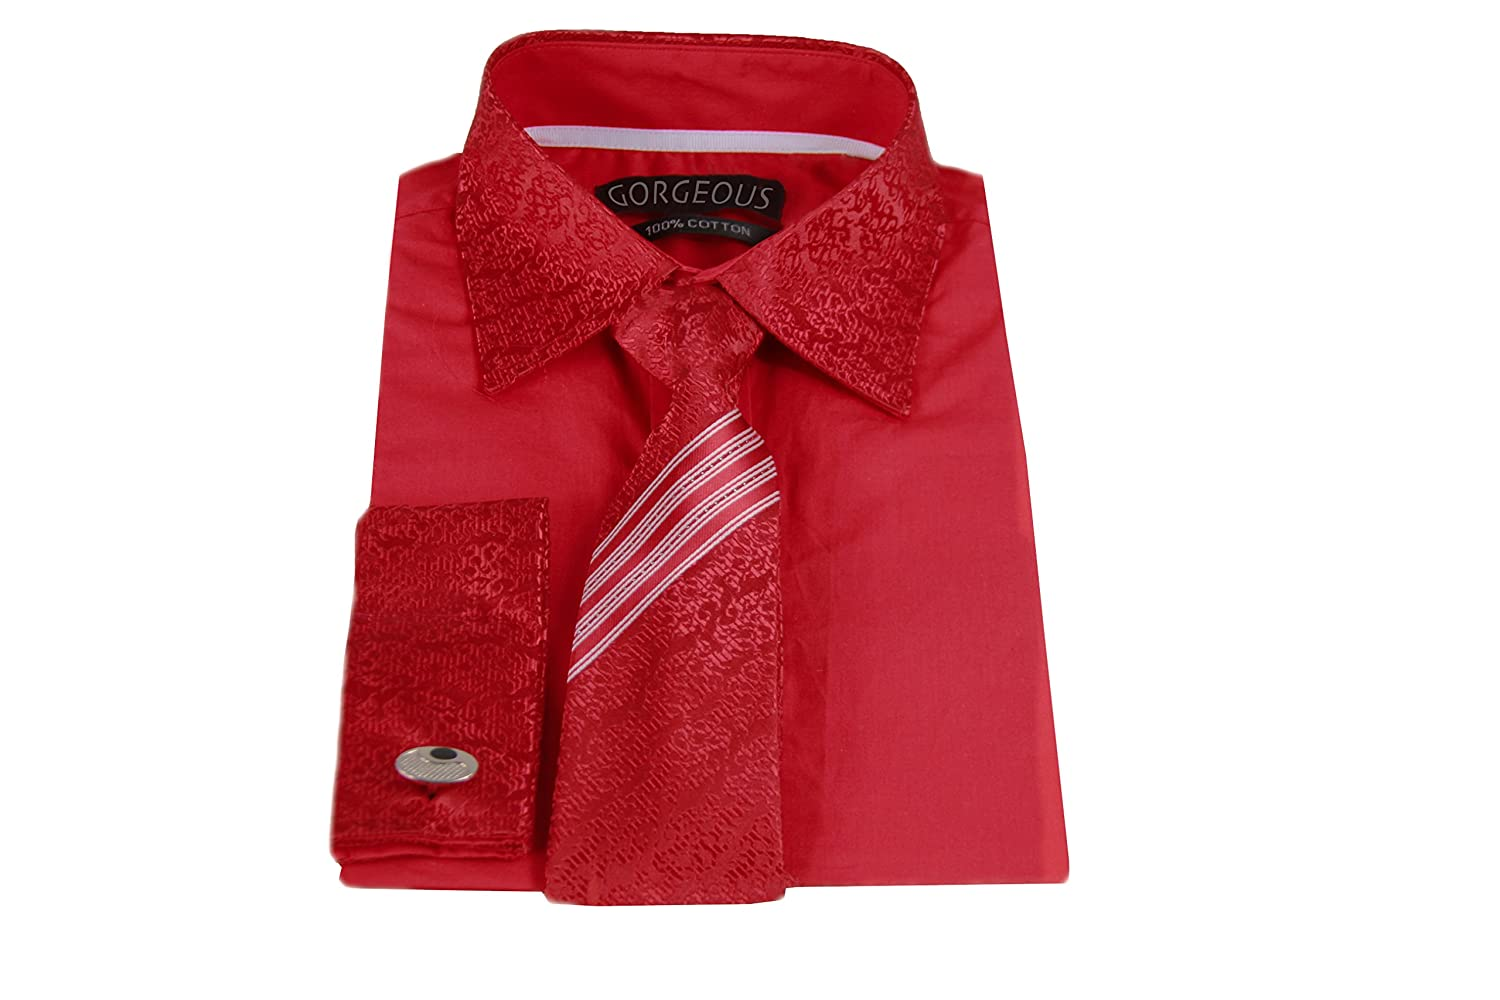 Boys Special Occasion Smart Patterned Shirt, Patterned Tie with Matching Cuffs & Cufflinks 100% Cotton